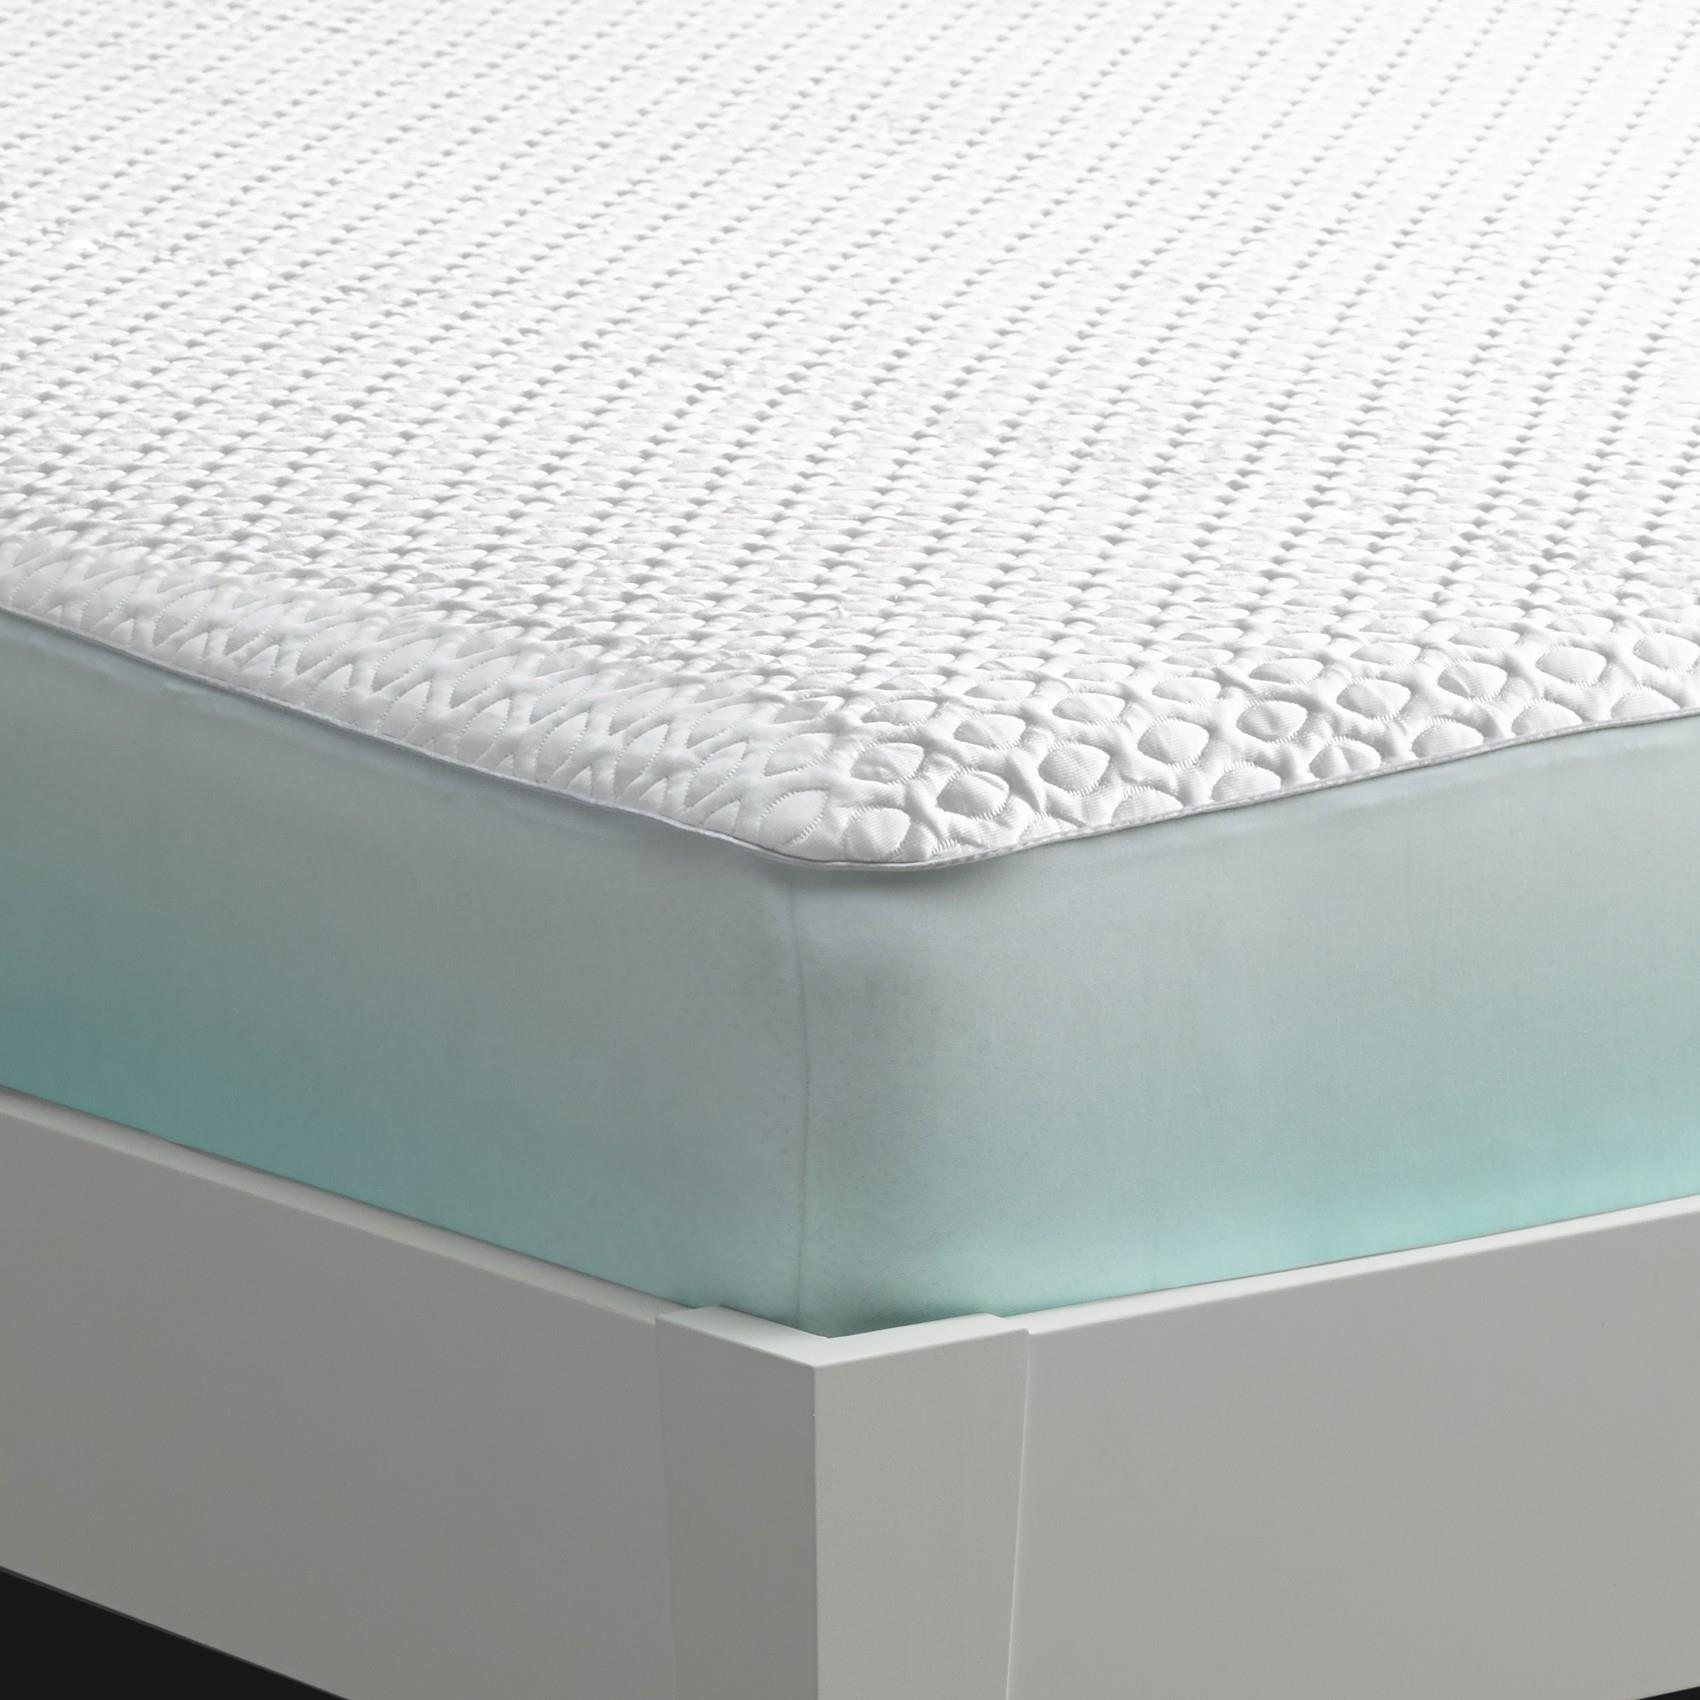 bedgear vertex twin xl mattress protector item number bgm61awfx